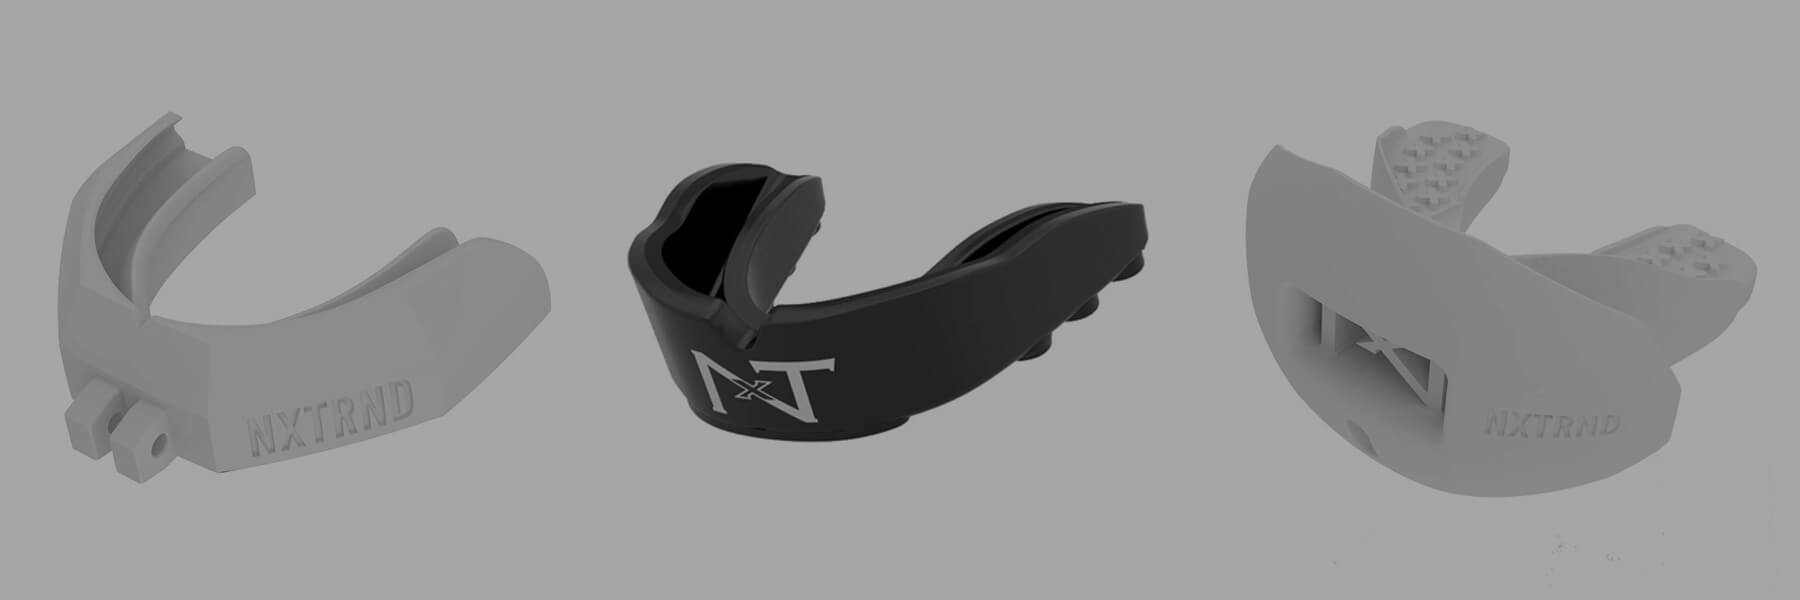 Nxtrnd What Is A Mouth Guard Used For?